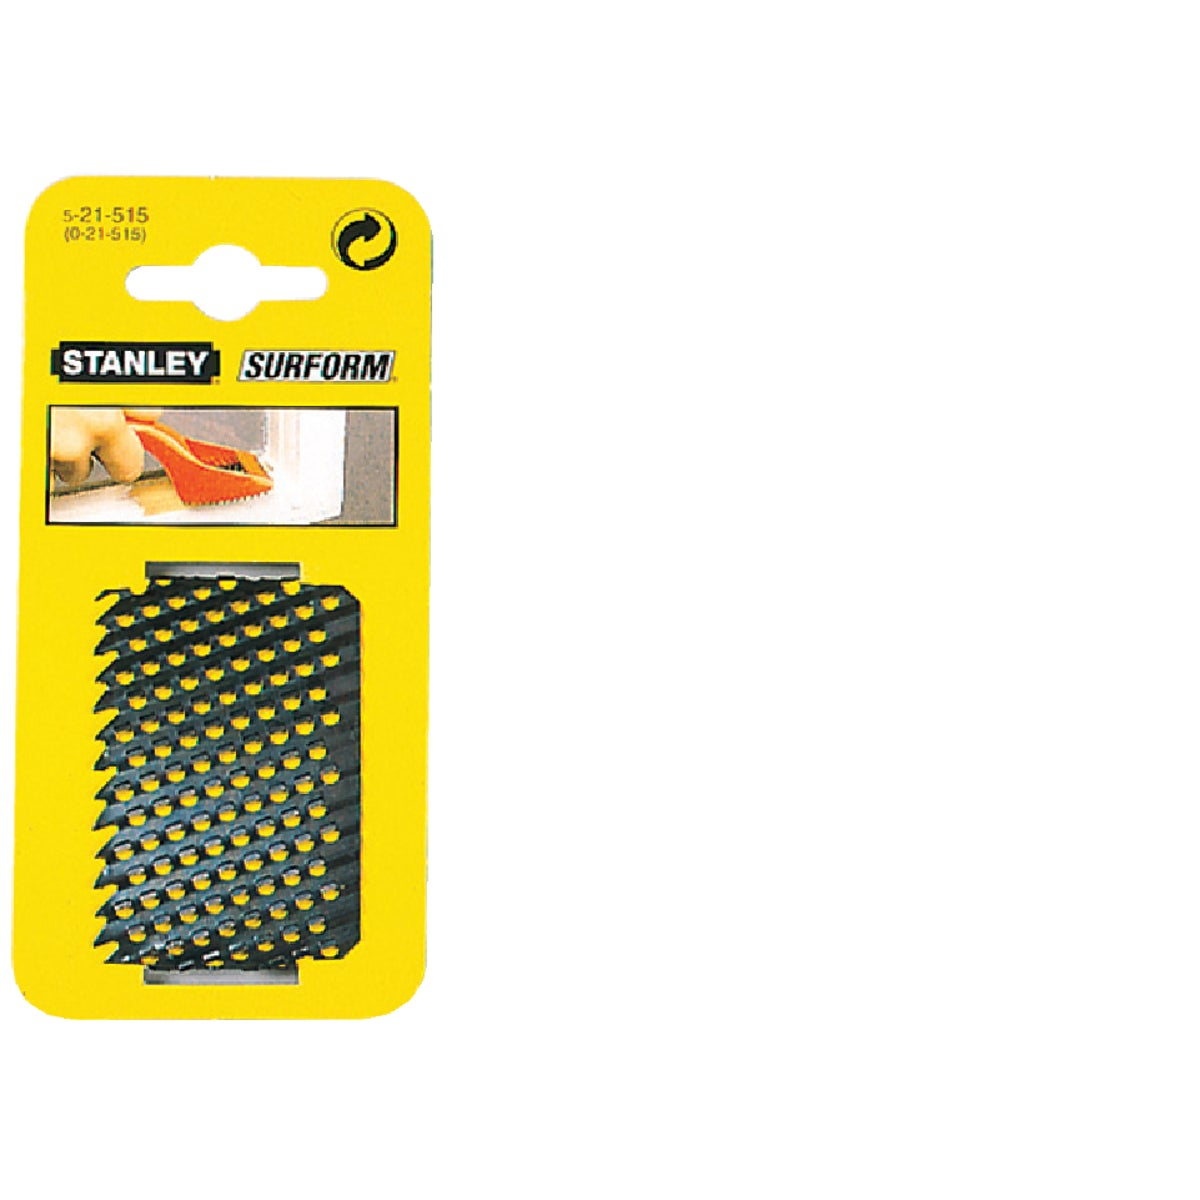 SHAVER BLADE - 21-515 by Stanley Tools